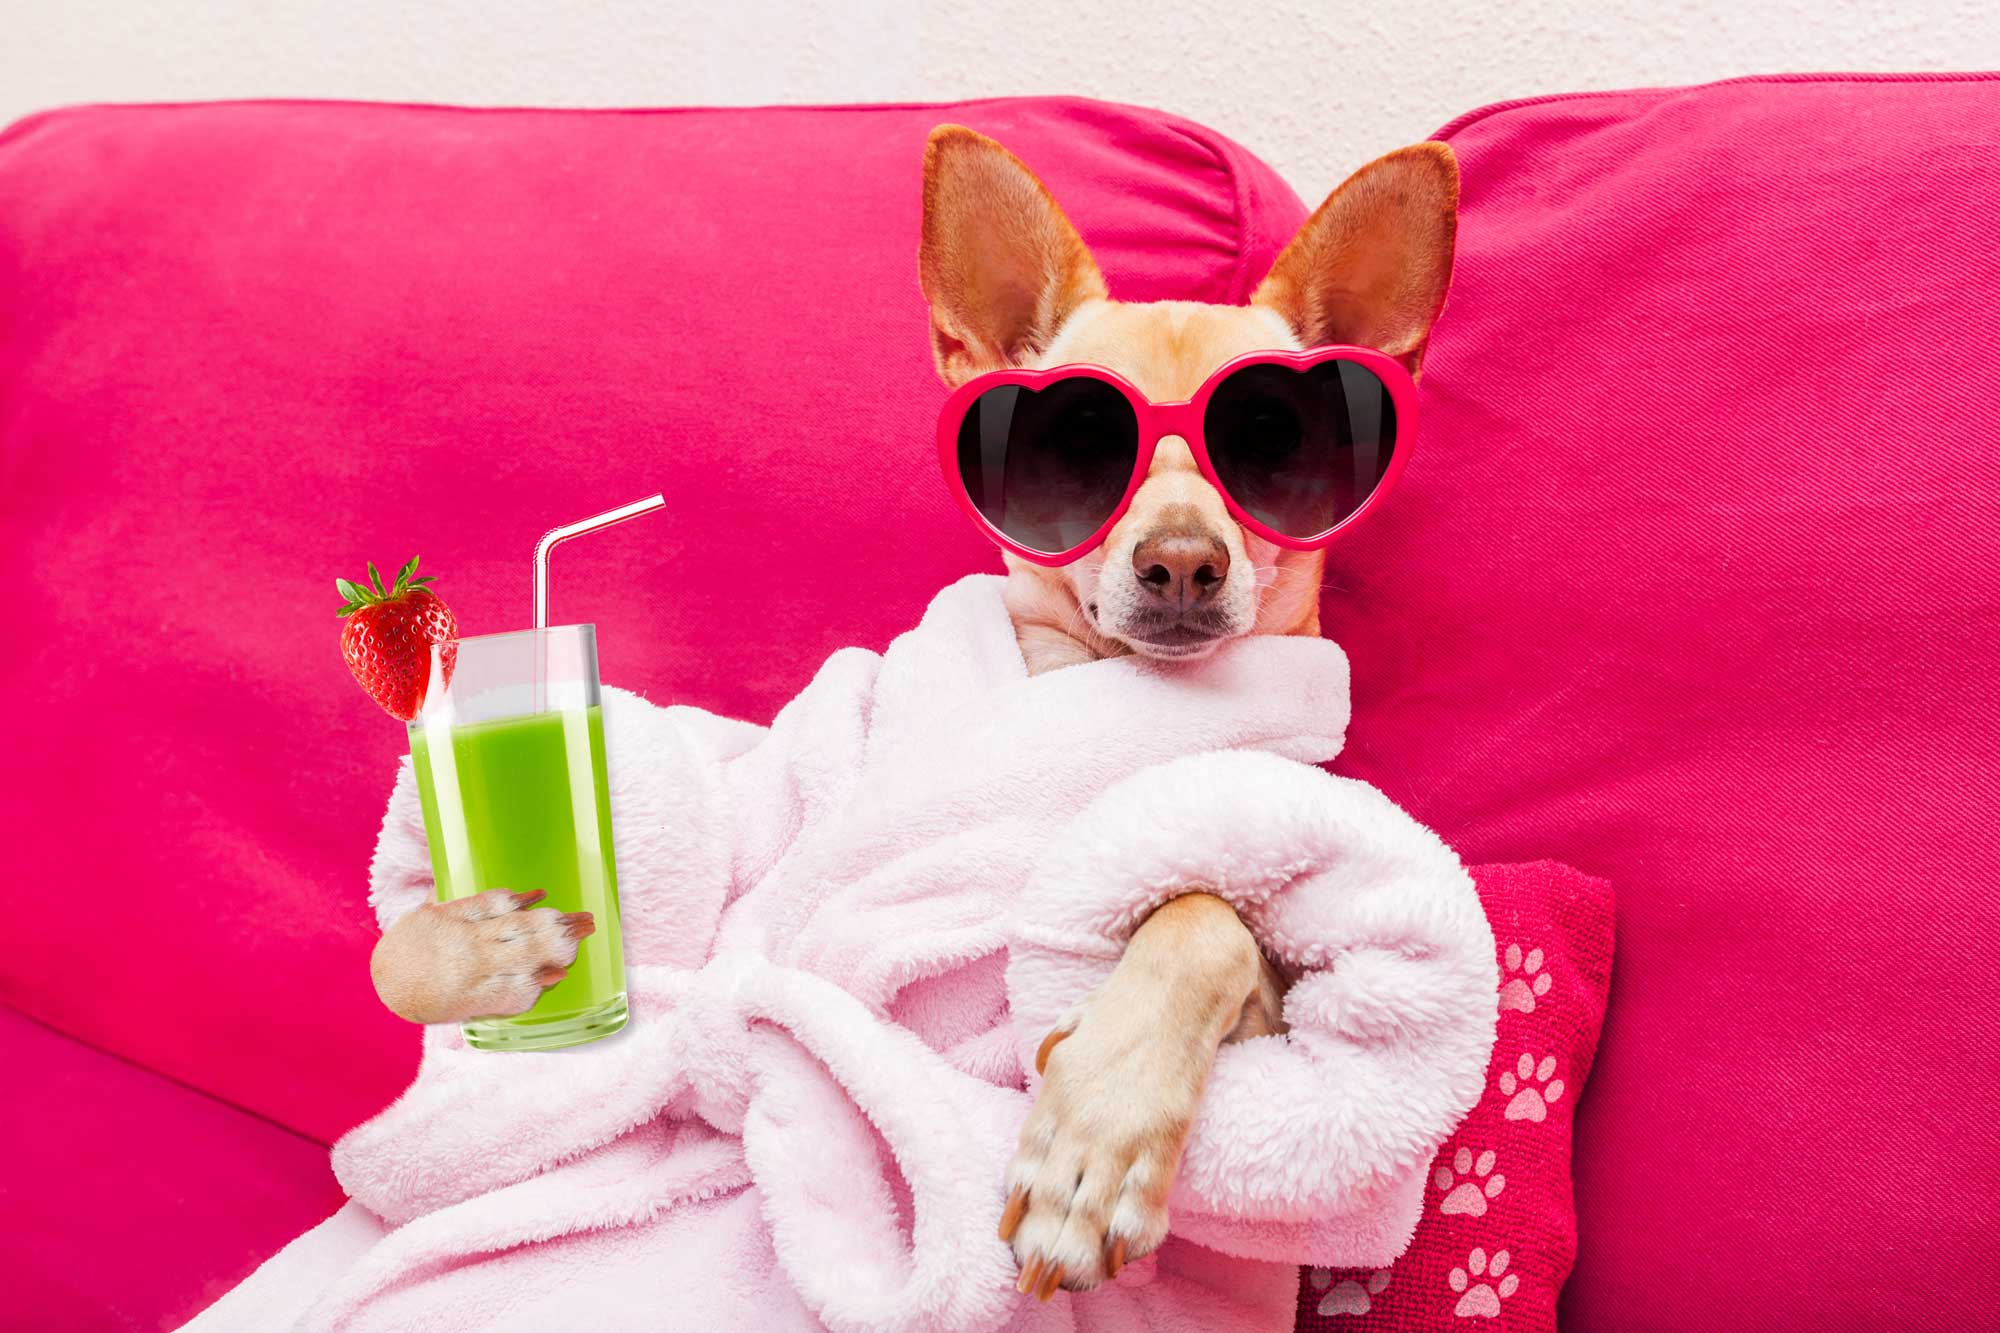 How To Make Your Dog Relax